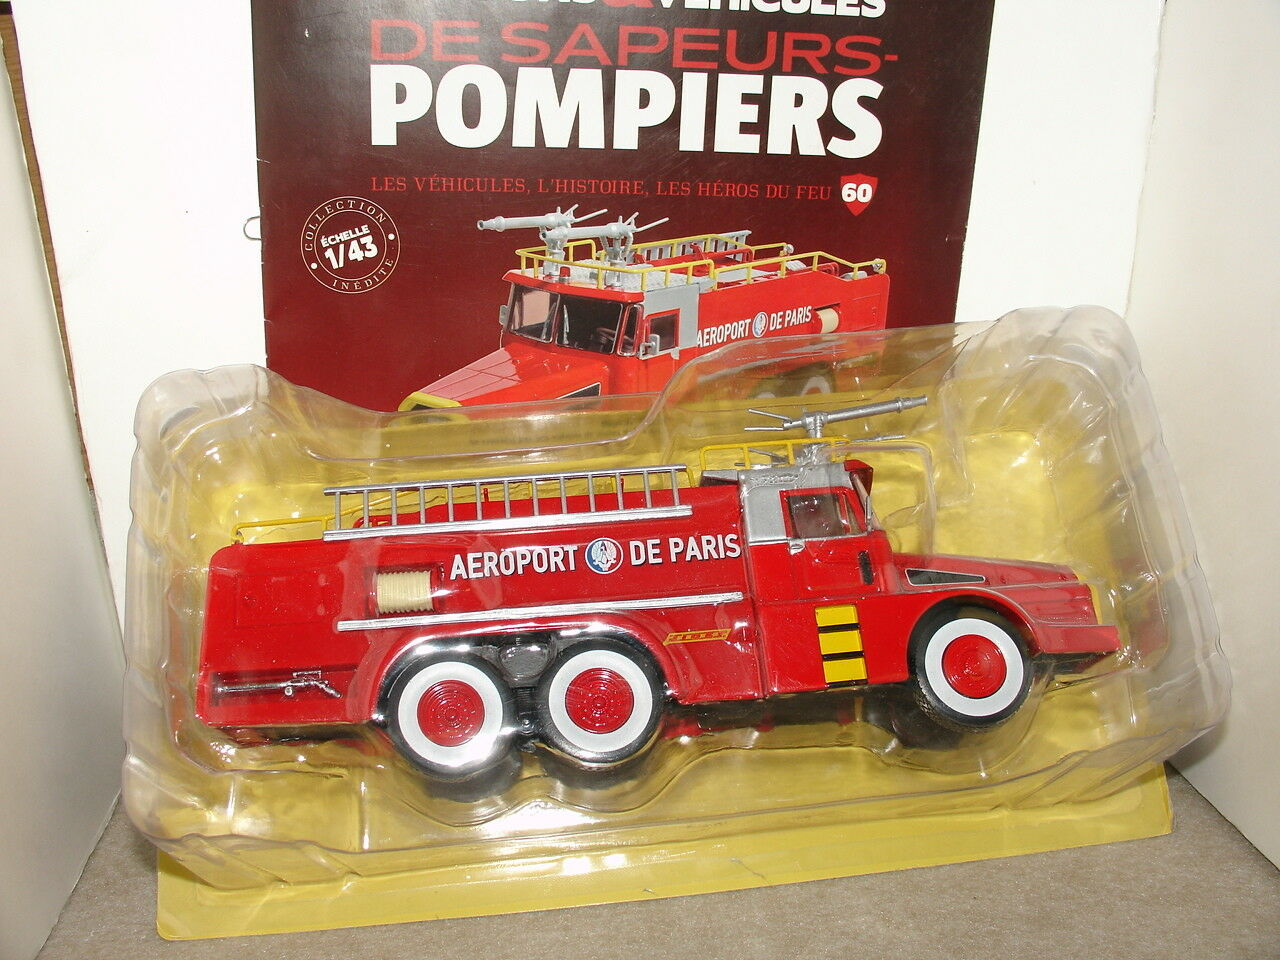 CAMIONS POMPIERS N° 60 AEROPORT VMA75 TYPE W8 DAE 6 DAE